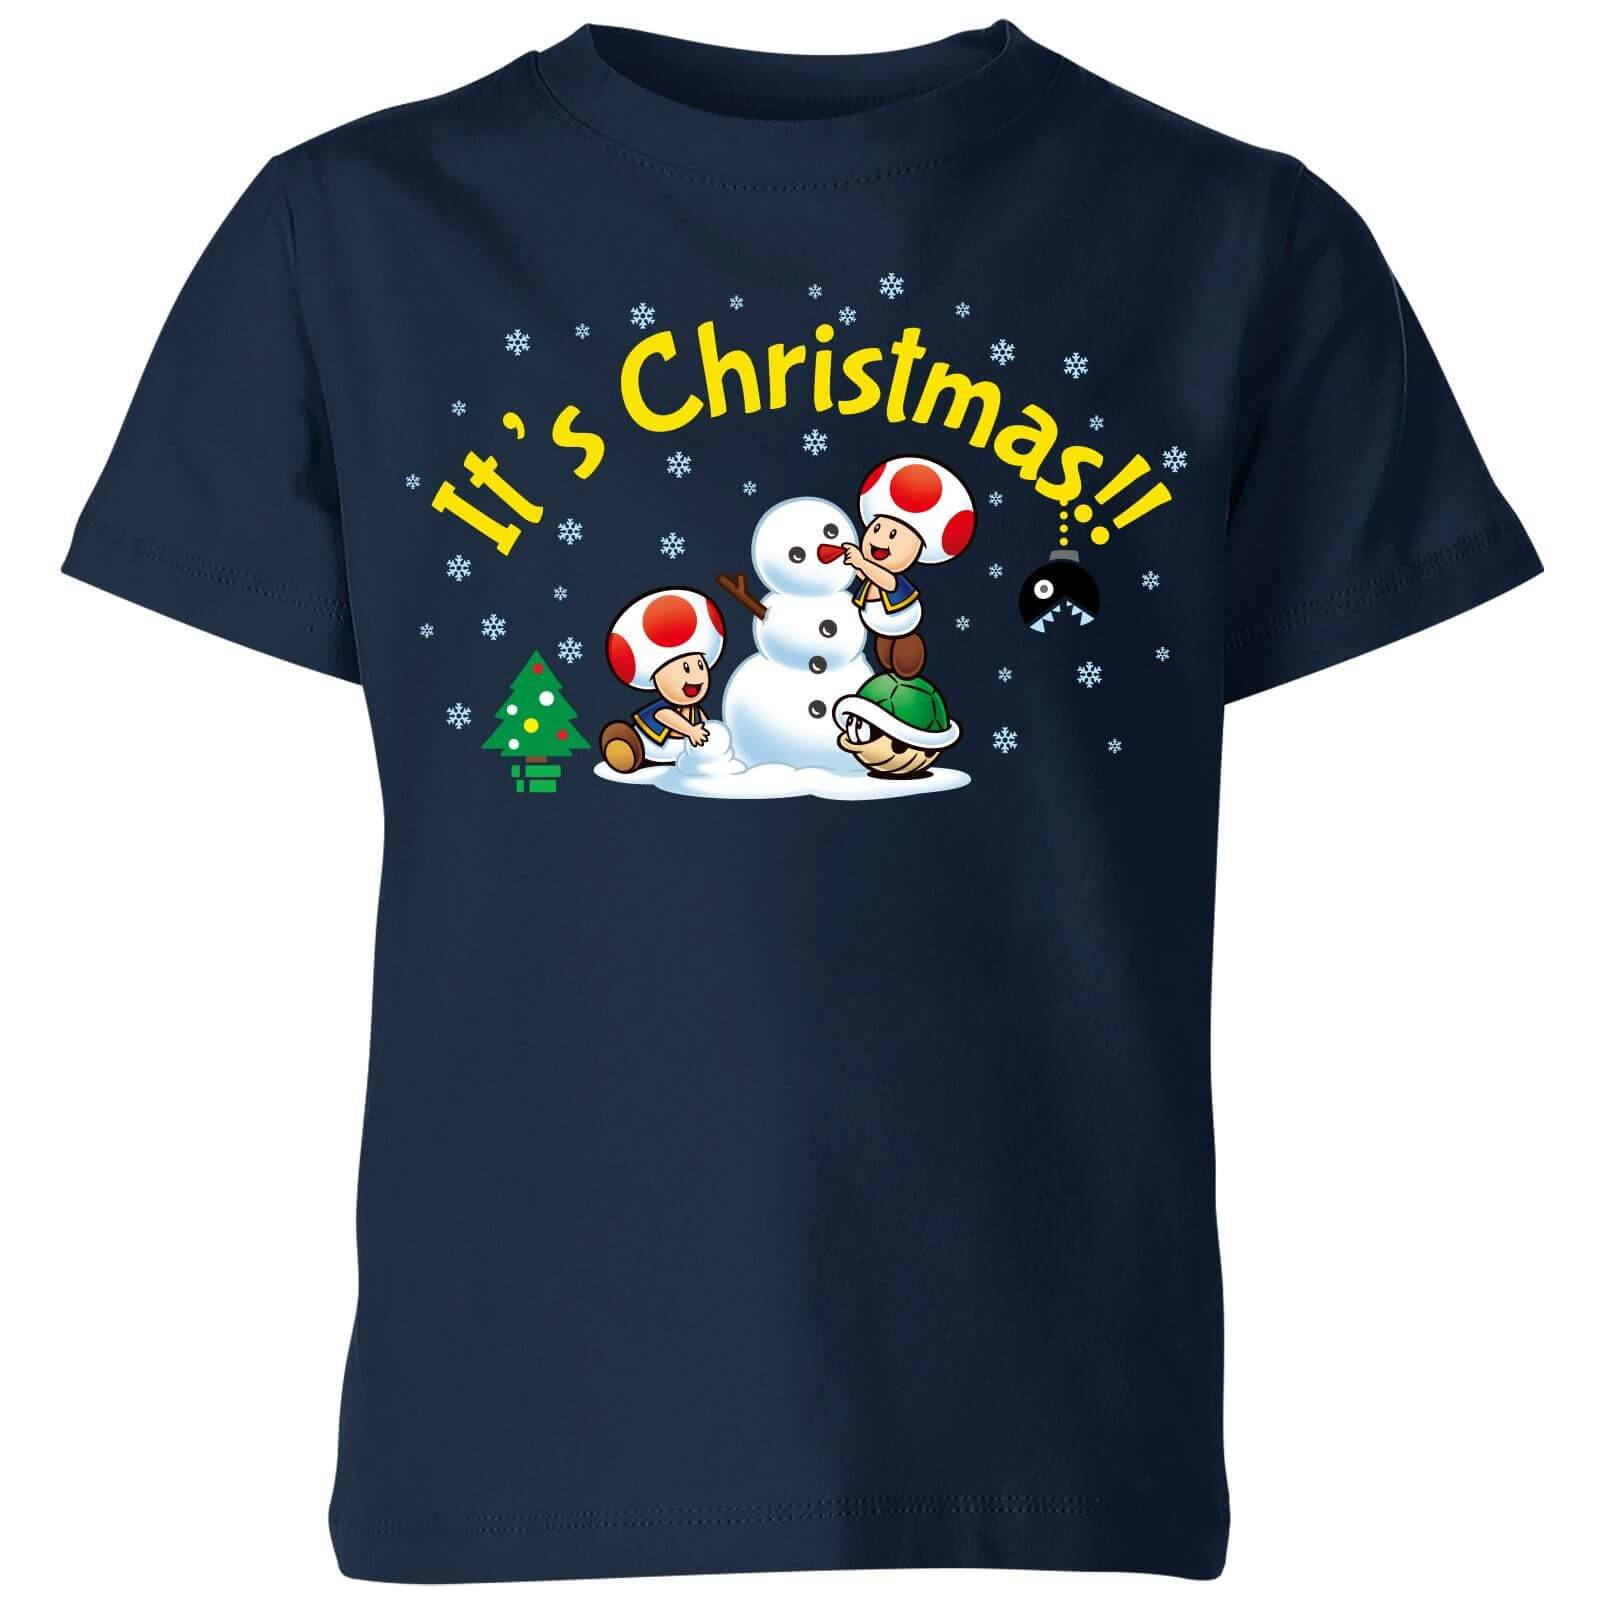 Nintendo Super Mario Toad Snowman Merry Christmas Kid's T-Shirt - Navy - 9-10 Years - Navy-unisex